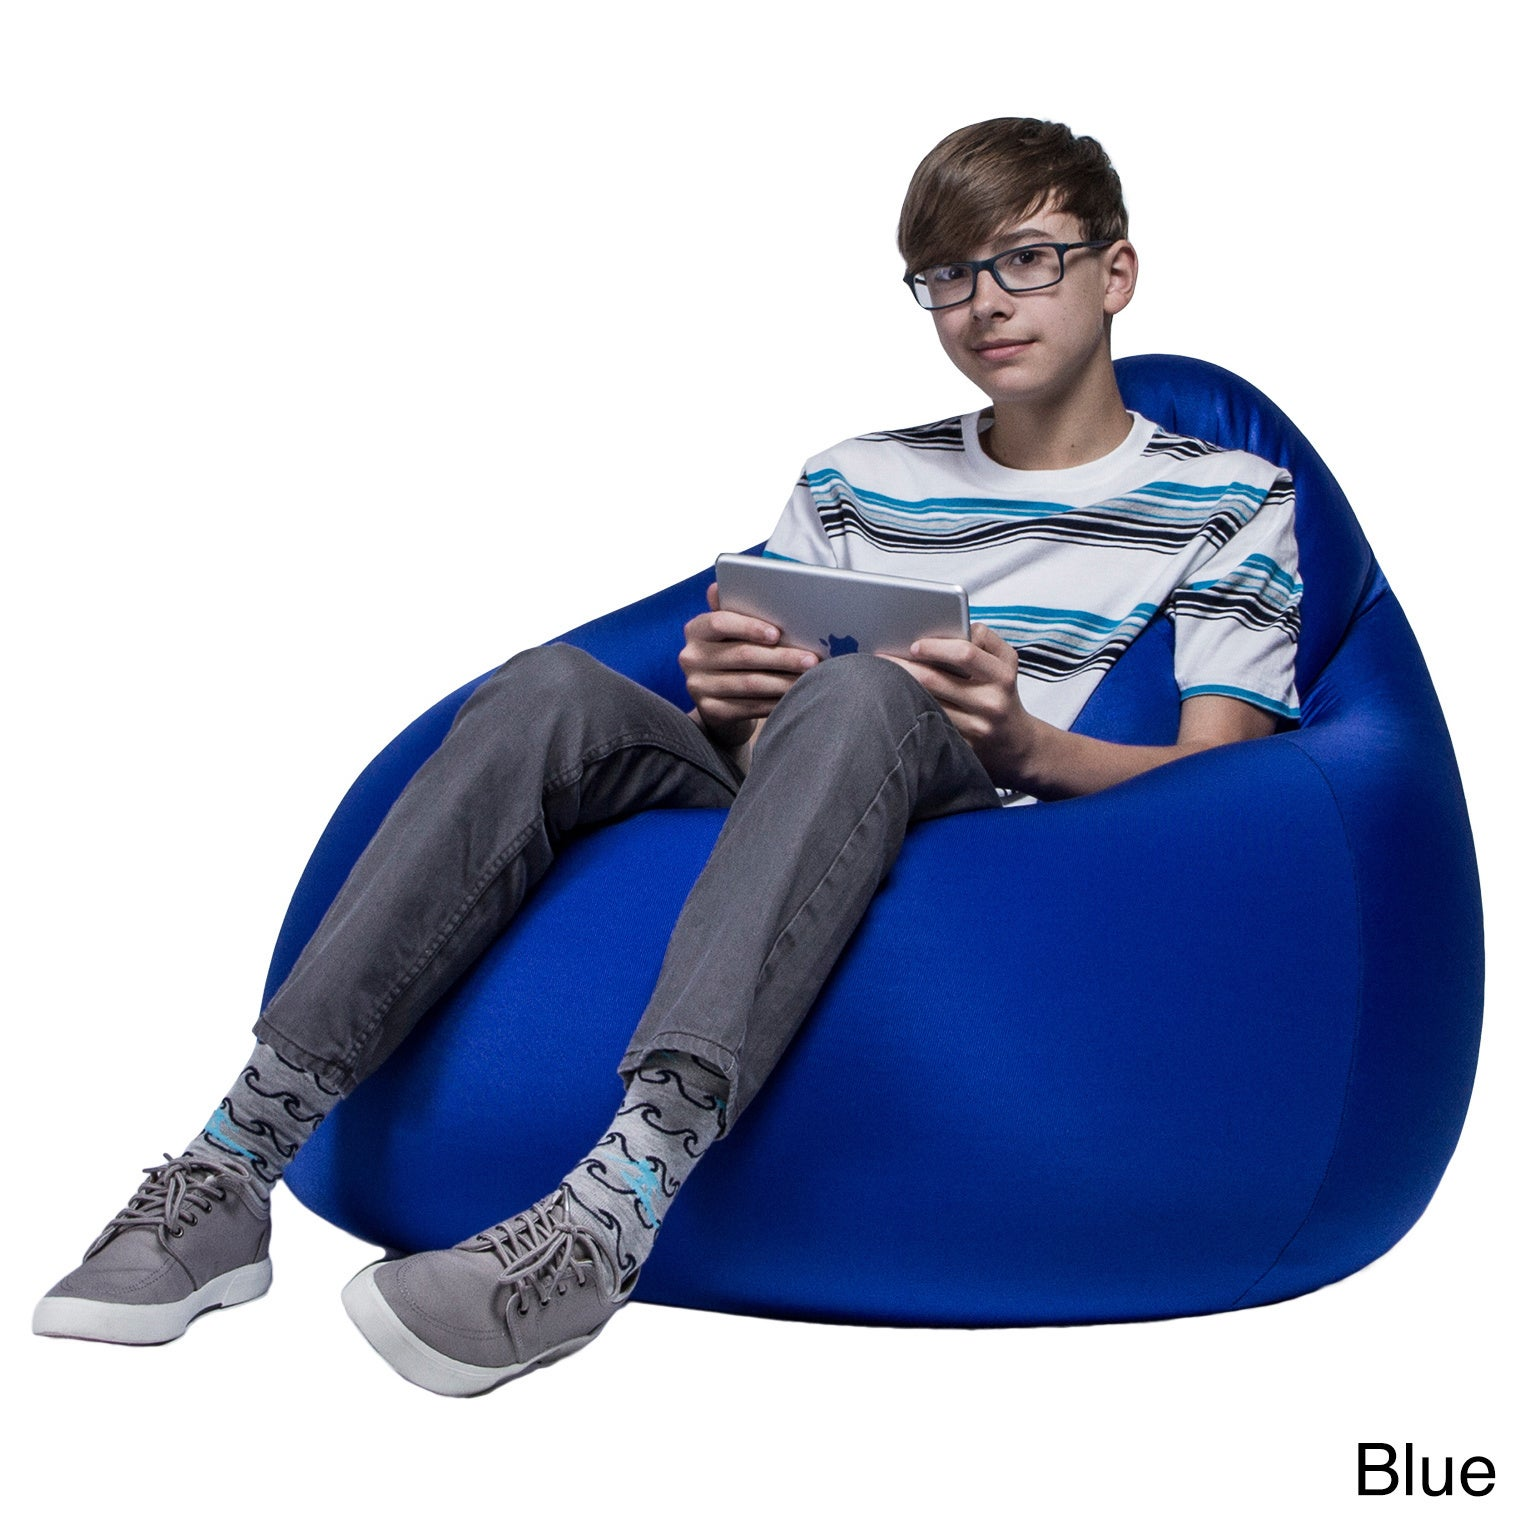 Shop Jaxx Nimbus Spandex Bean Bag Chair - Free Shipping Today - Overstock.com - 10230011  sc 1 st  Overstock.com & Shop Jaxx Nimbus Spandex Bean Bag Chair - Free Shipping Today ...